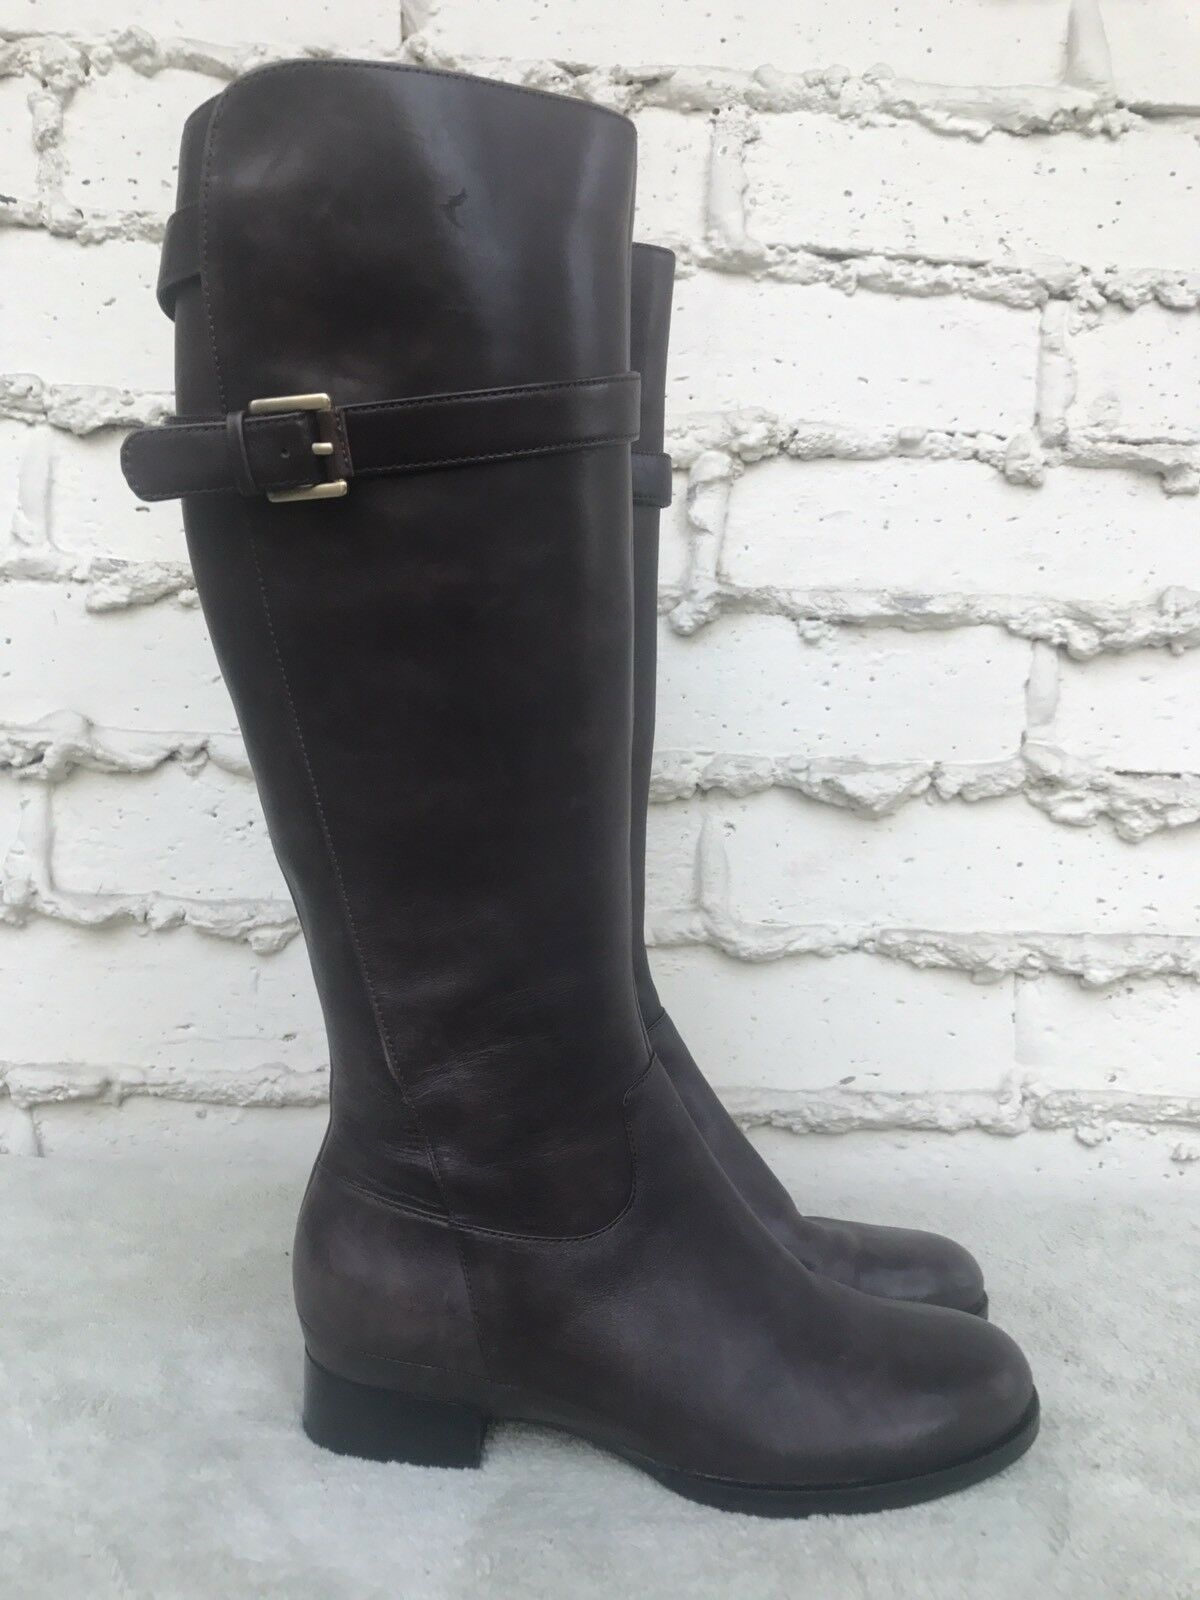 EUC Womens ECCO Dark Brown Leather Knee High Riding Boots Size EUR 37 US 6.5